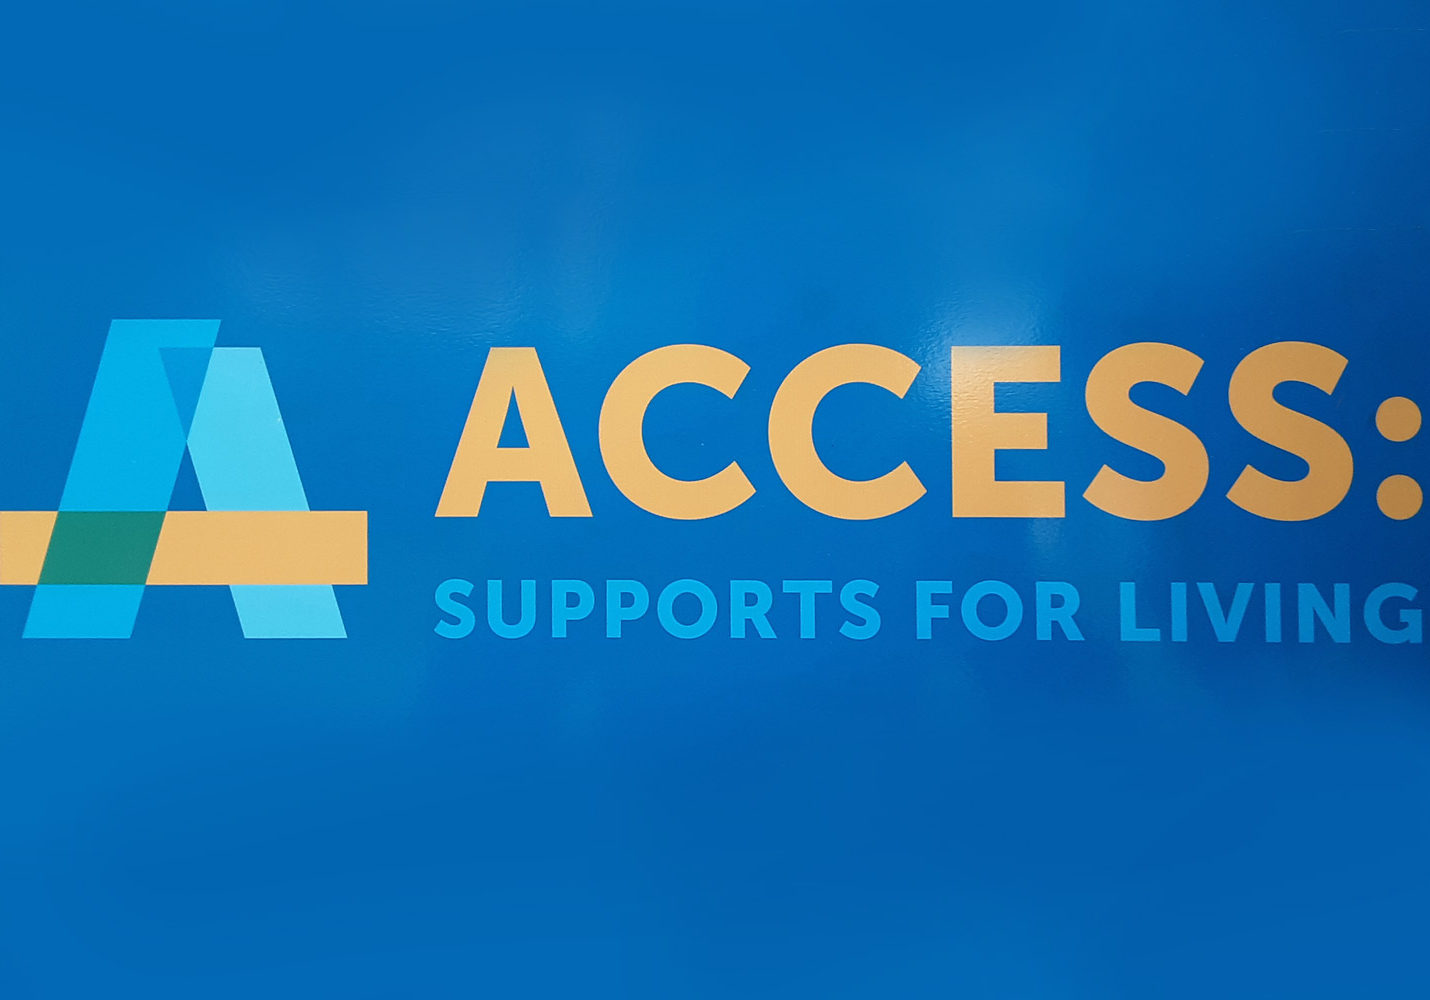 Access supports for living